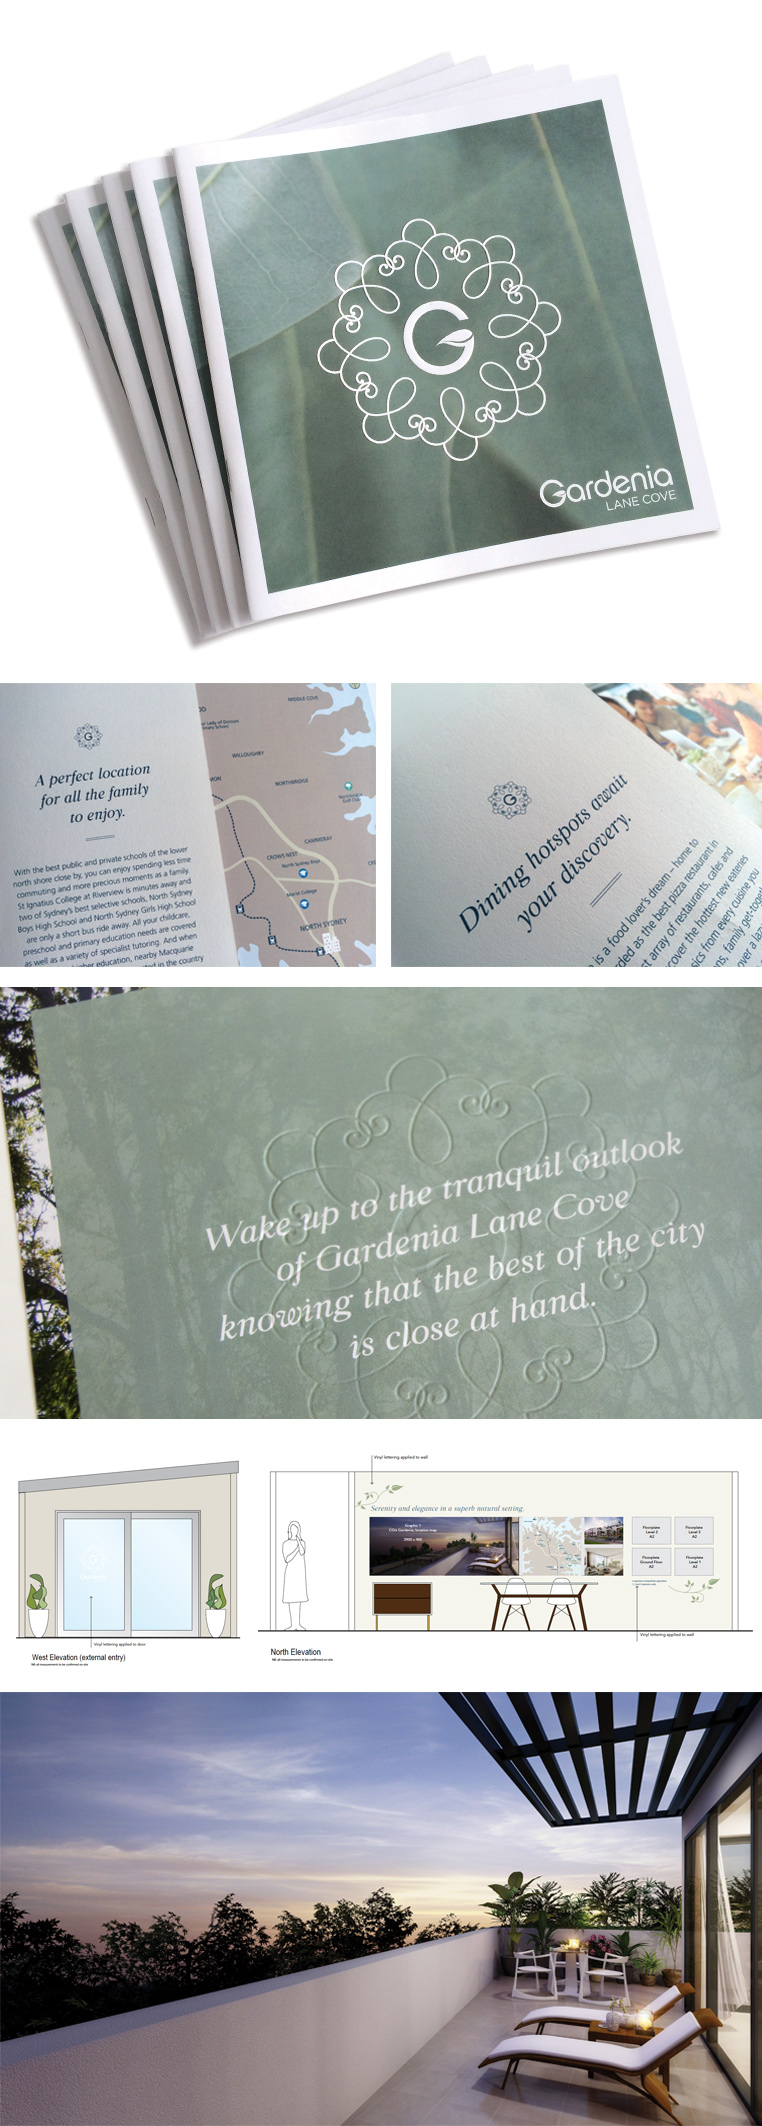 Gardenia brand design communications